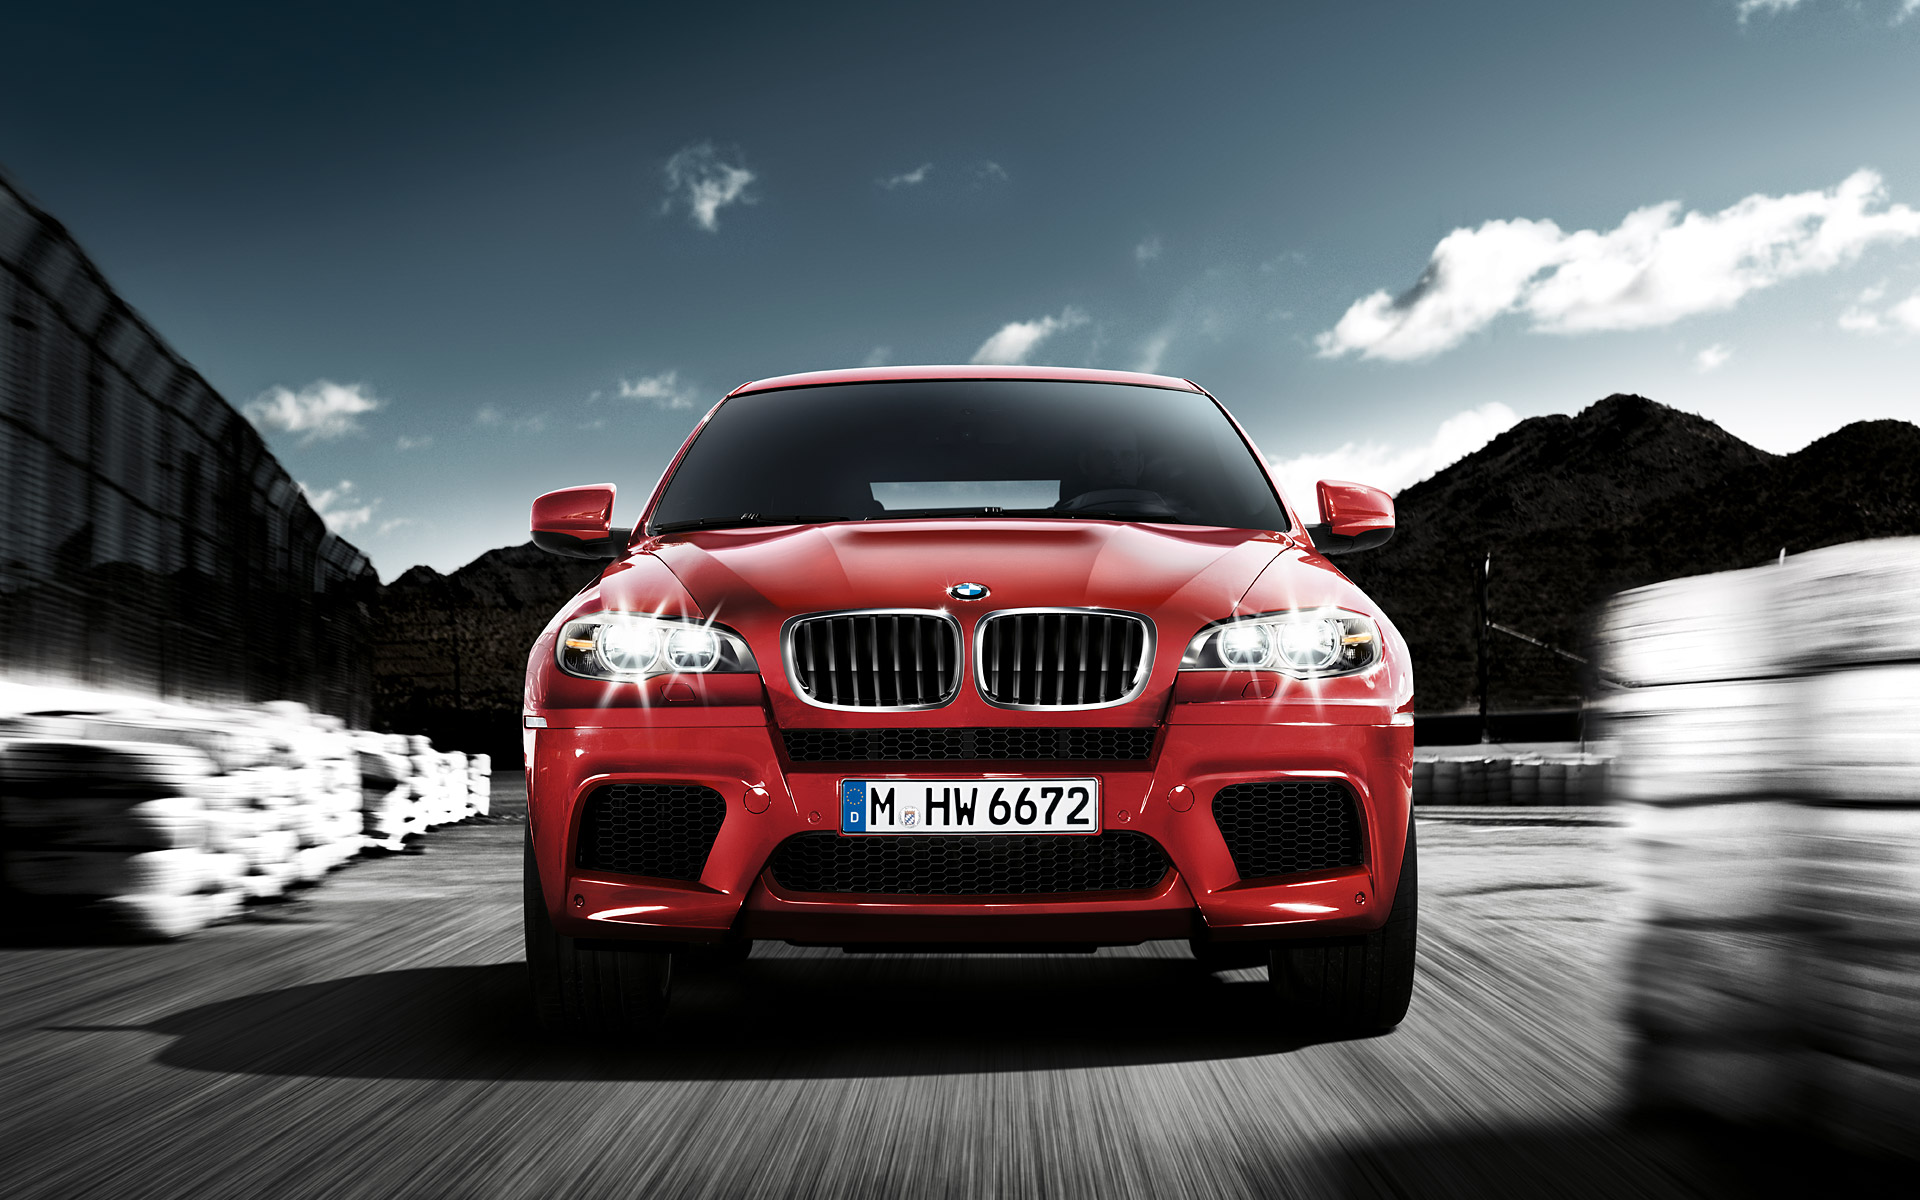 Wallpapers 2013 bmw x6 and 2013 bmw x6 m facelifts 02 bmw x6m wallpaper 1920x1200 655x409 voltagebd Image collections